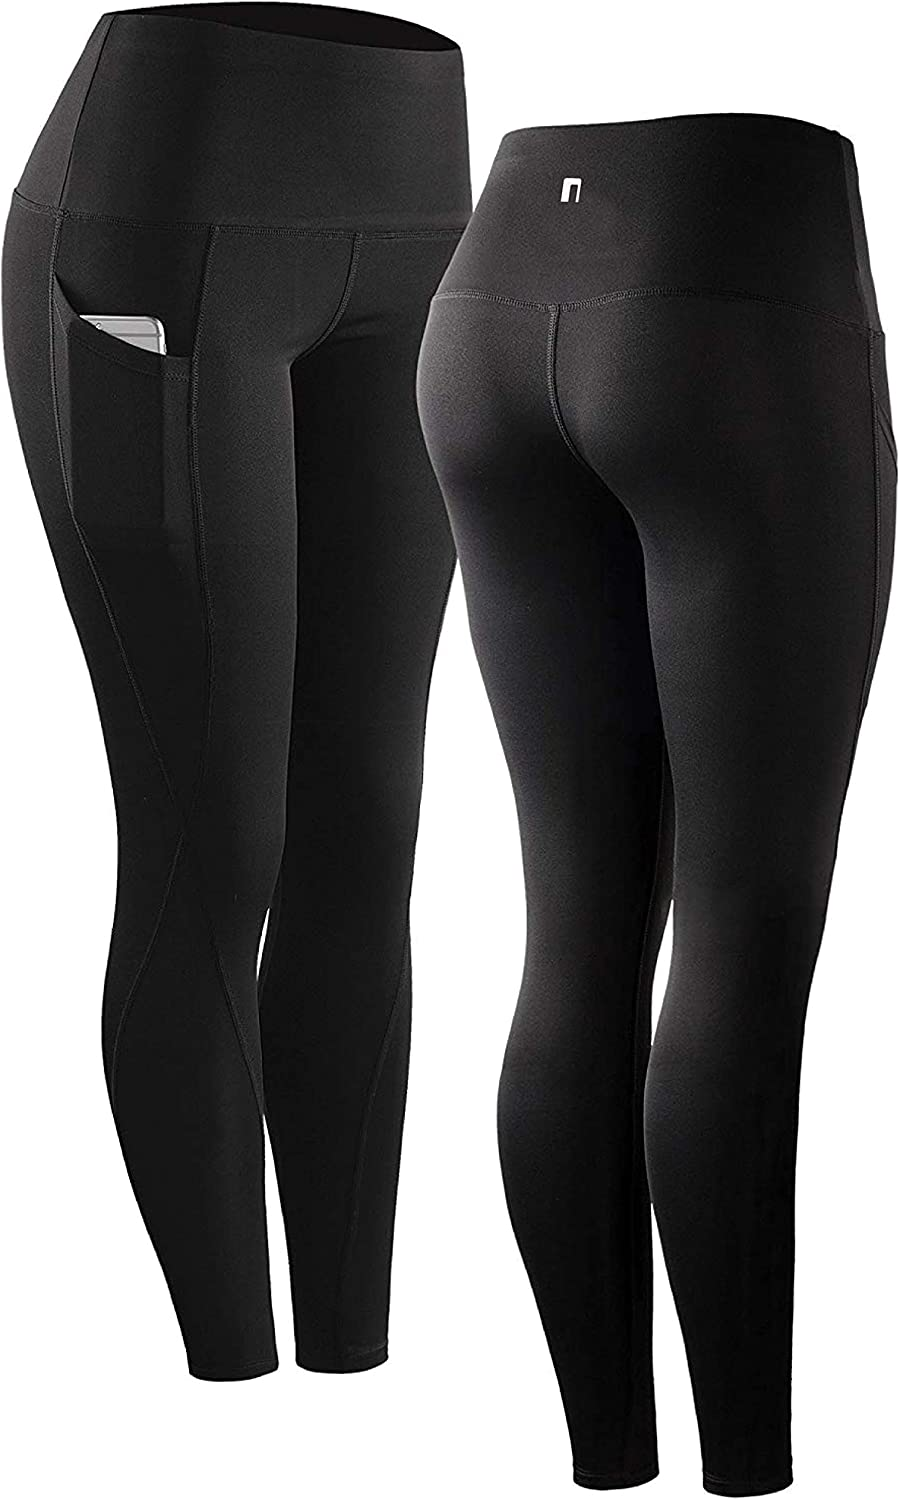 Black Womens High Waisted Leggings Stretchy Gym Workout Running Thick Yoga Pants